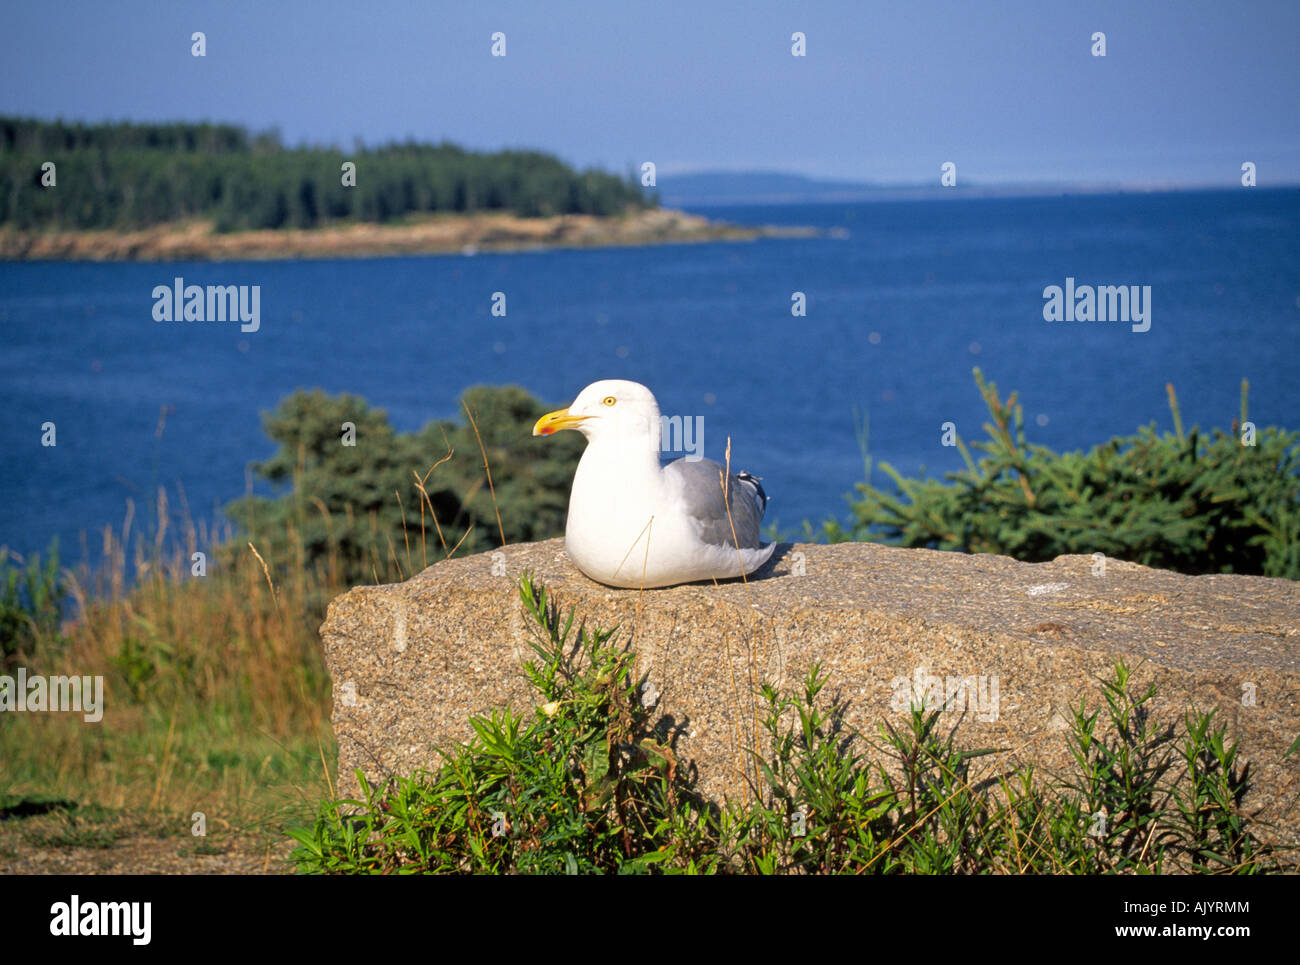 A seagull on the rocky coast of Acadia National Park, Maine - Stock Image